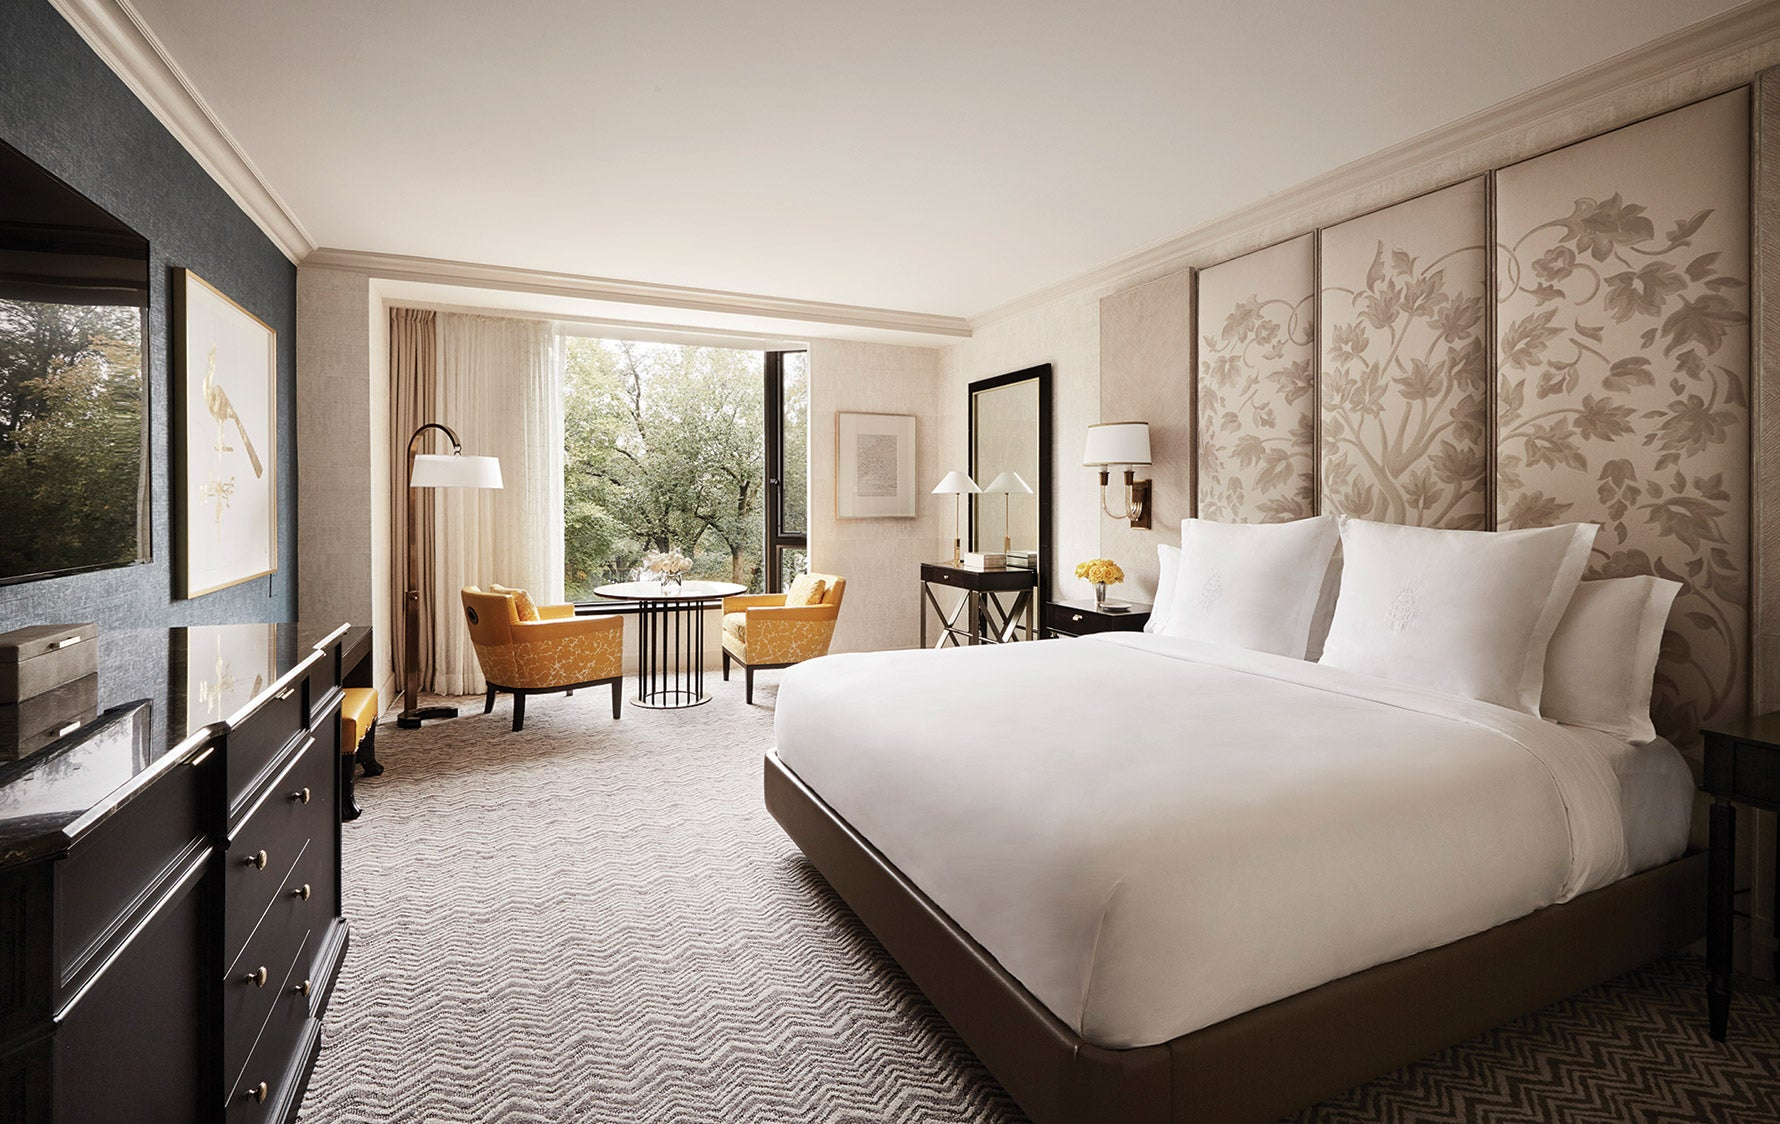 Headboard Alternatives | Upholstered Wall Panels | Four Seasons Boston bedroom | Luxury Bedroom Design |Read more in the LuxDeco.com Style Guide